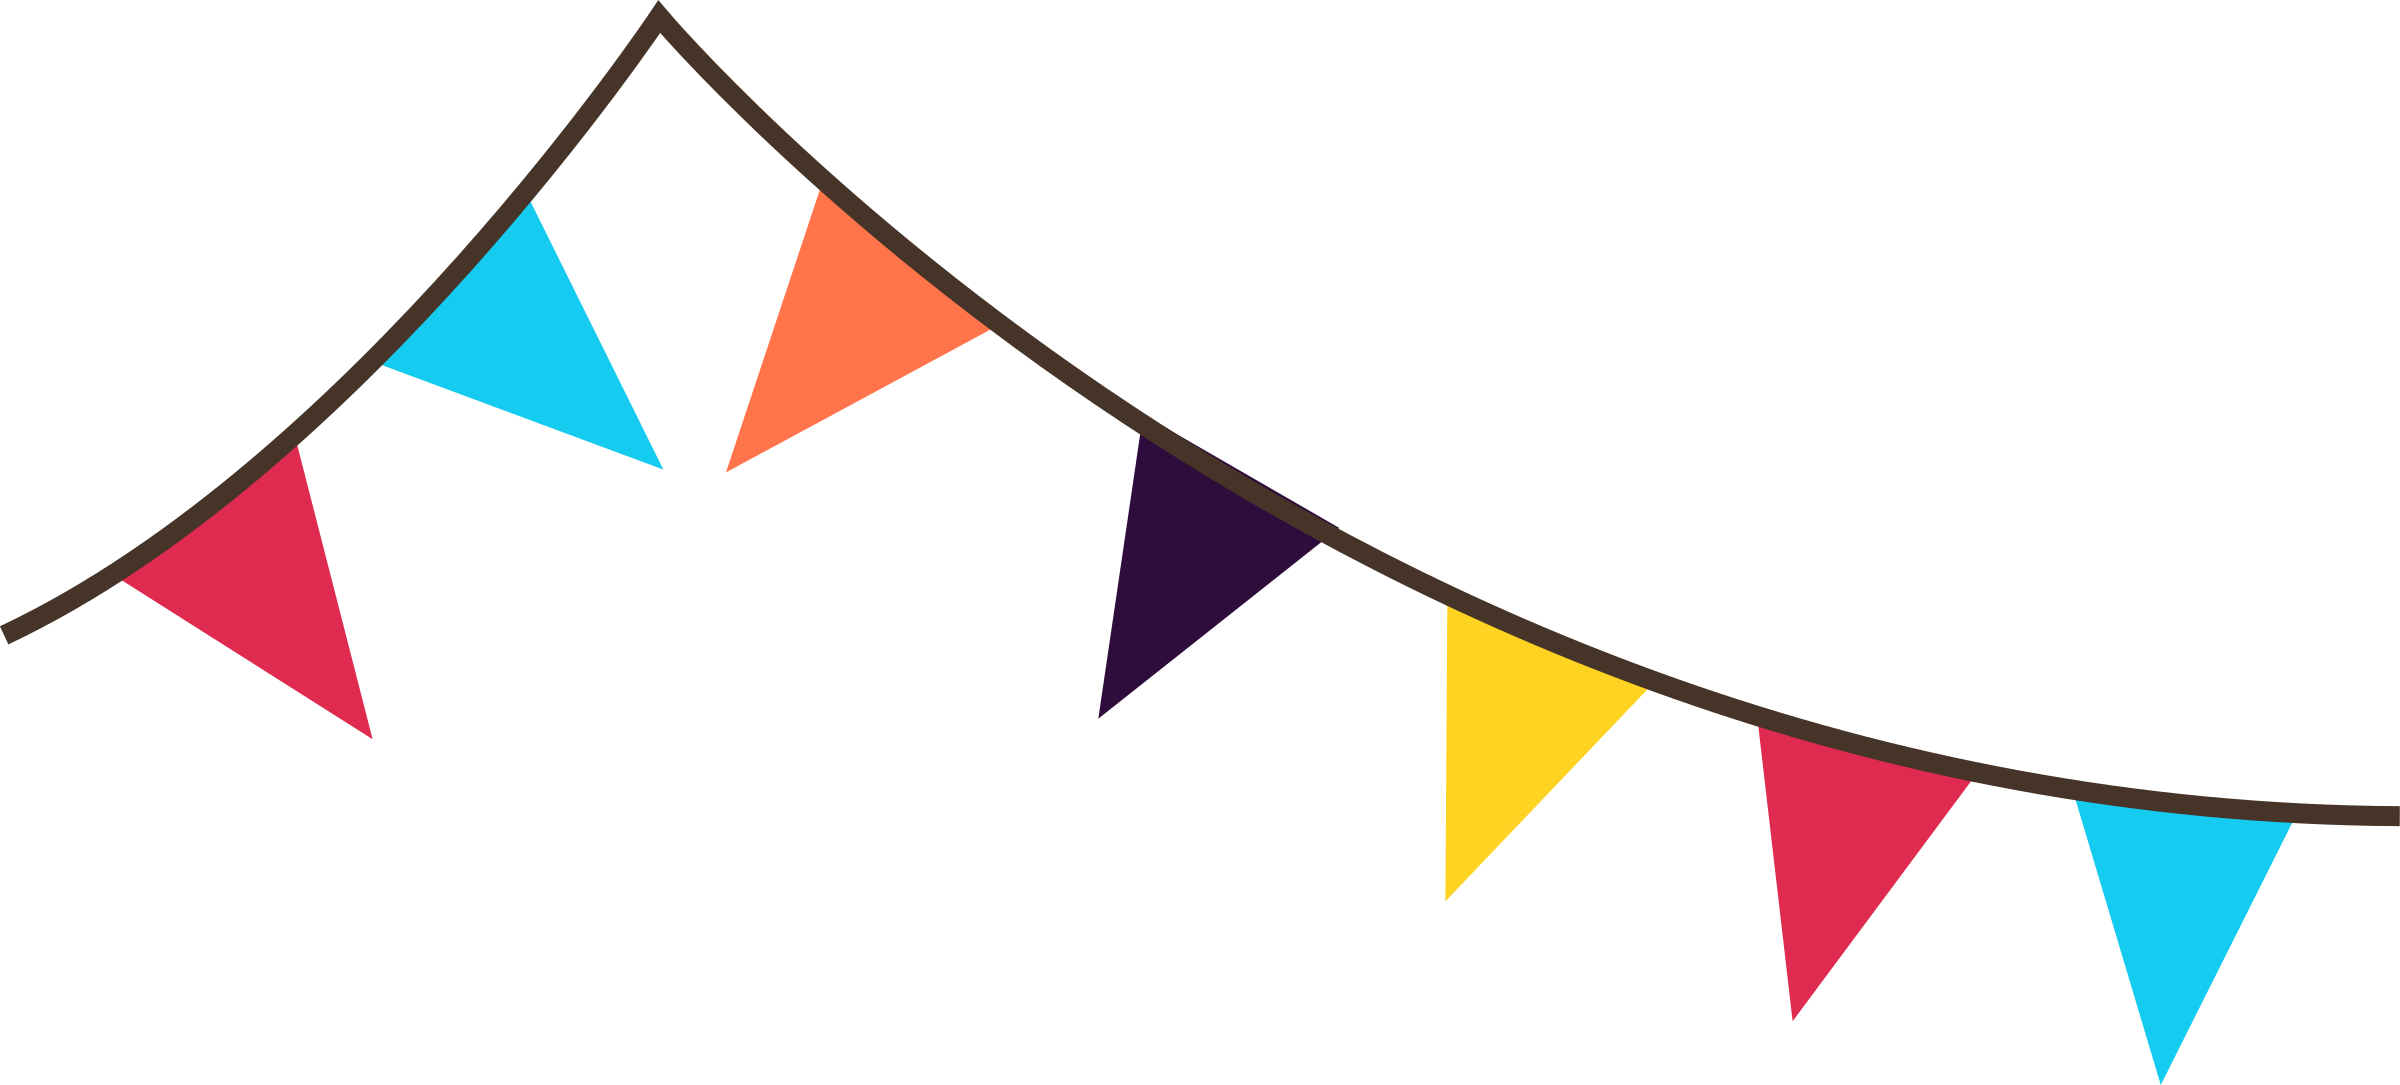 Bunting banner flags by spacefem